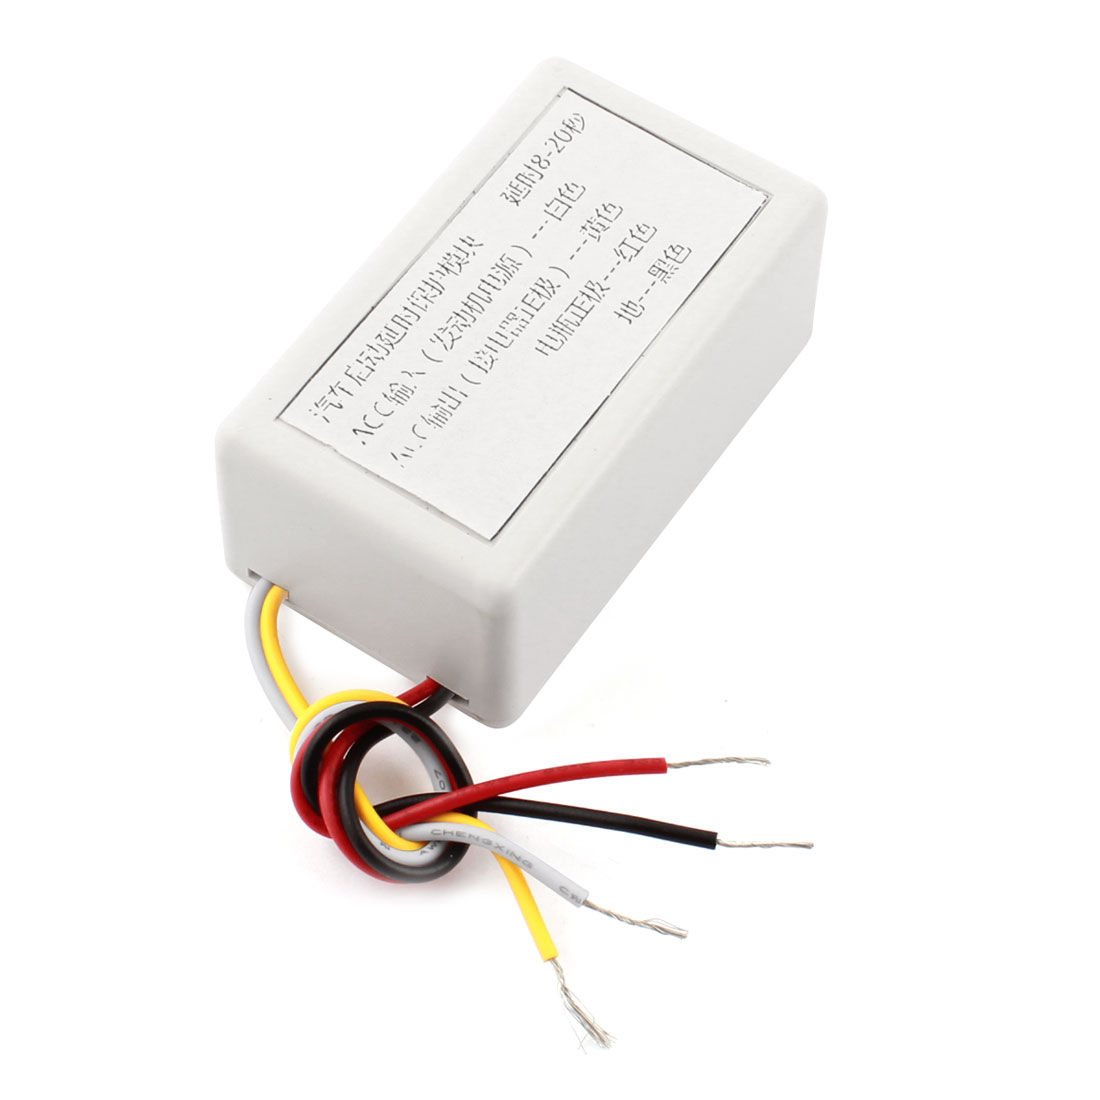 DC 12V 8-20s 4-Wire Connect Rectangle Plastic Case Start-up Power Off Delay Module for Modified Car Auto